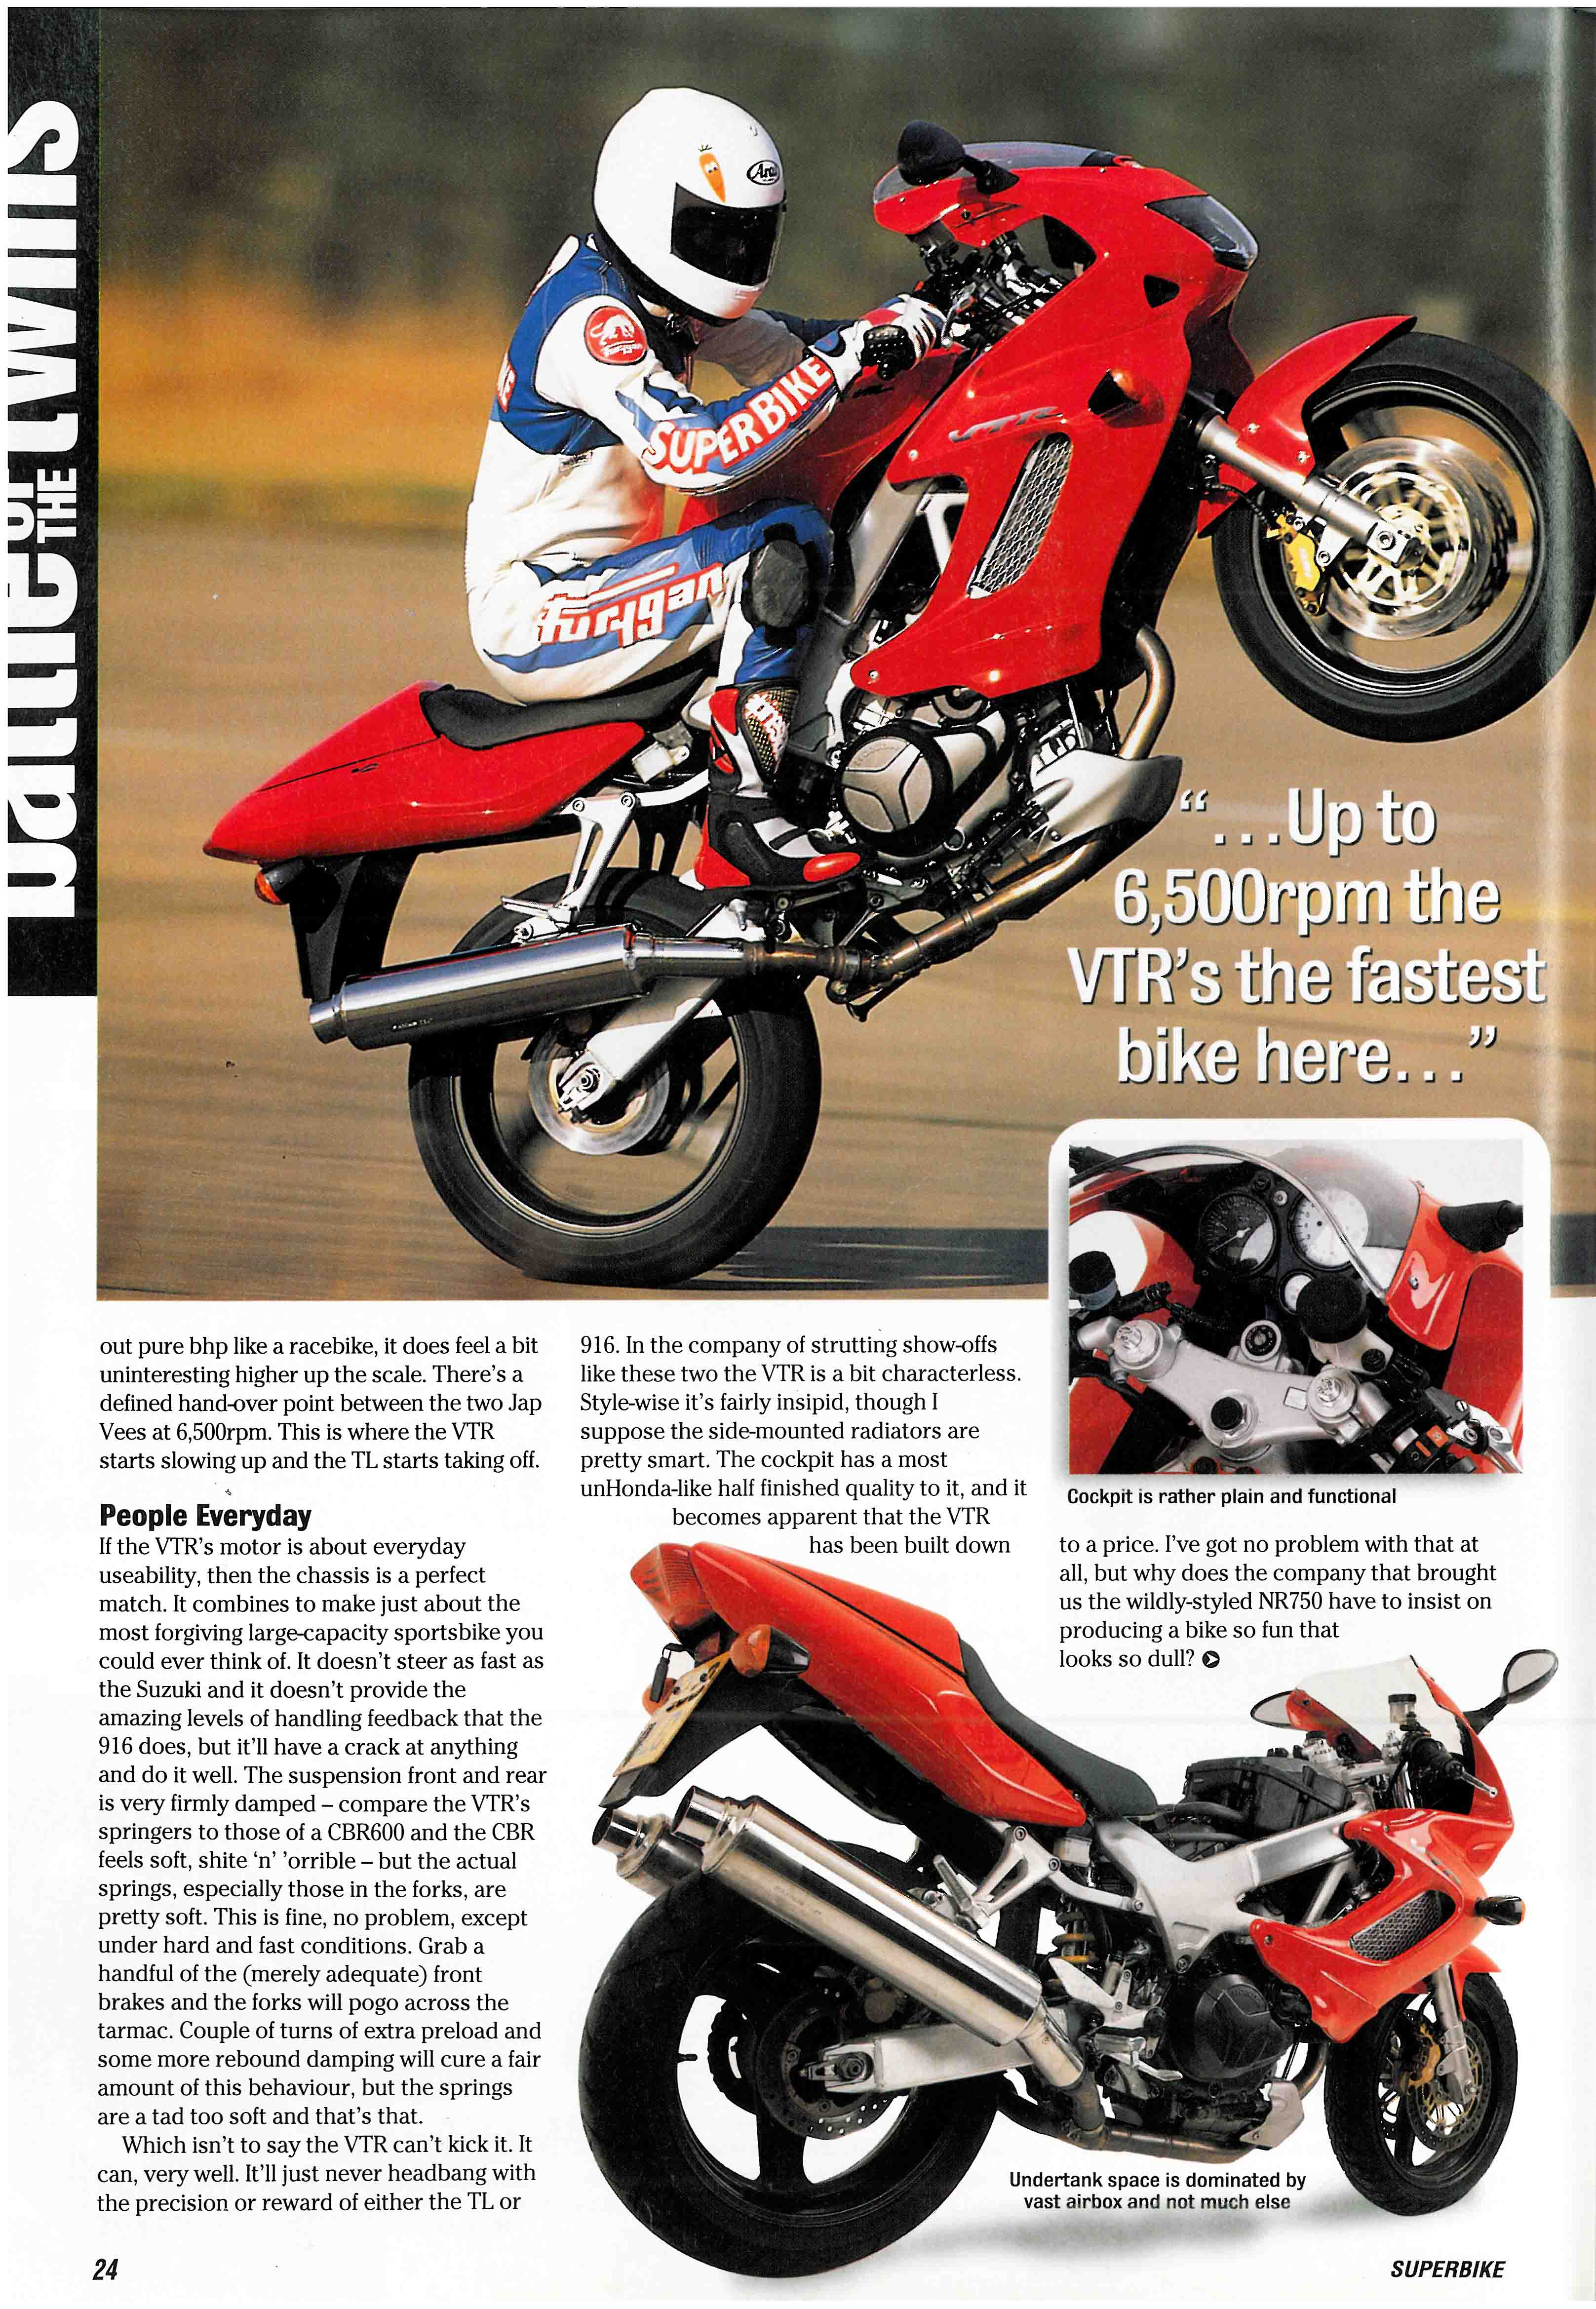 Throwback Thursday - Battle Of The Twins from the April 1997 issue of SuperBike | Superbike Magazine